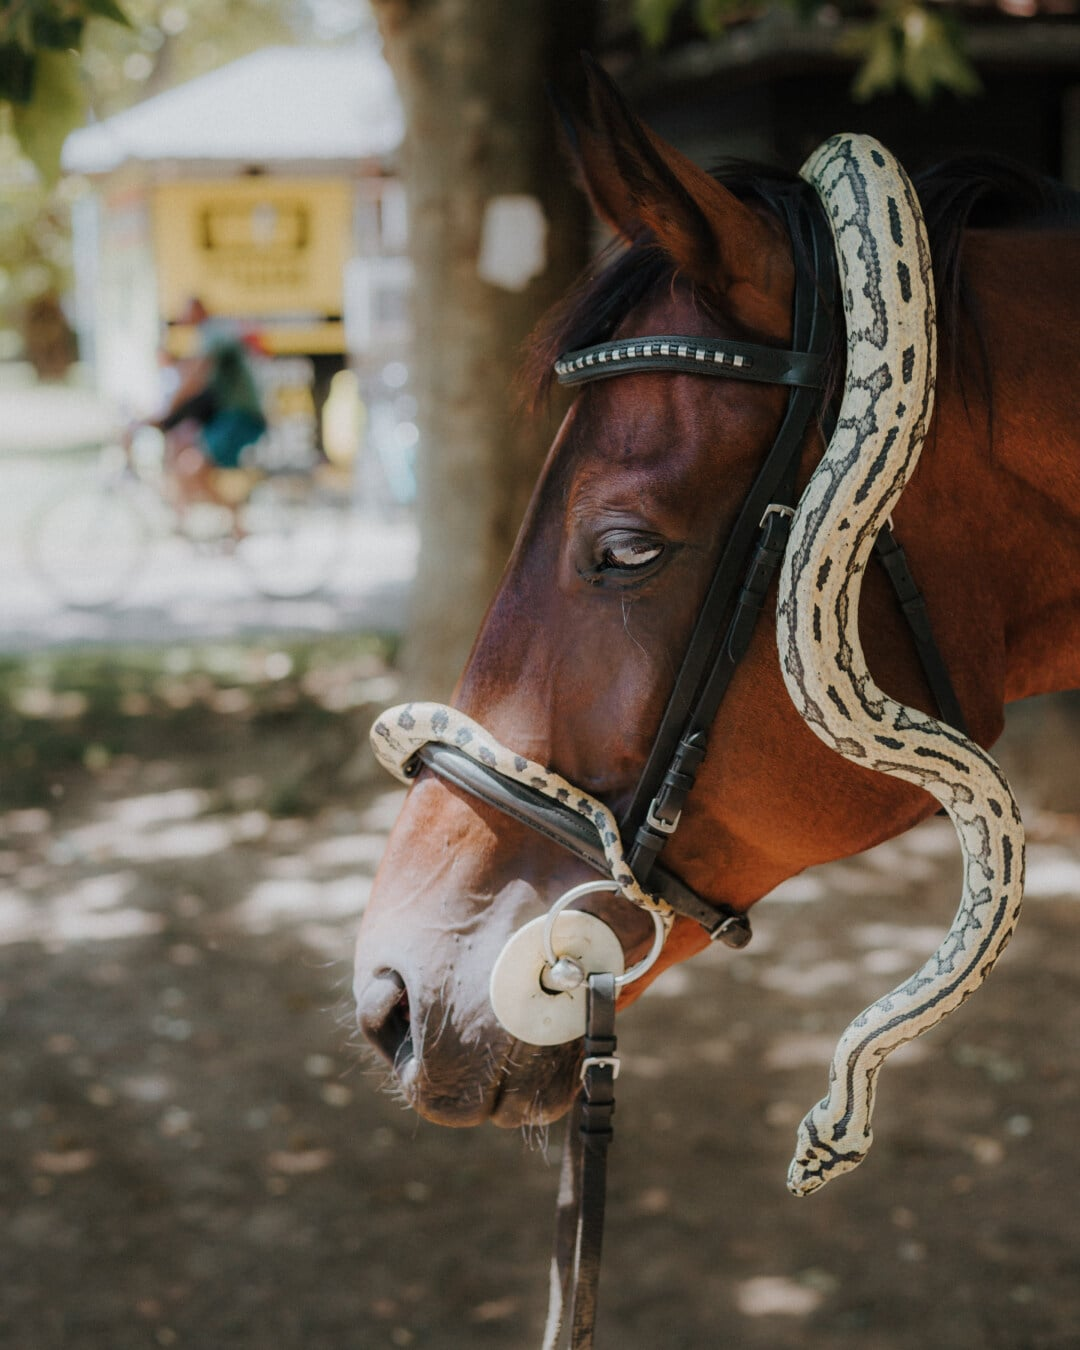 reptile, snake, horse, head, animals, cavalry, portrait, outdoors, nature, mare